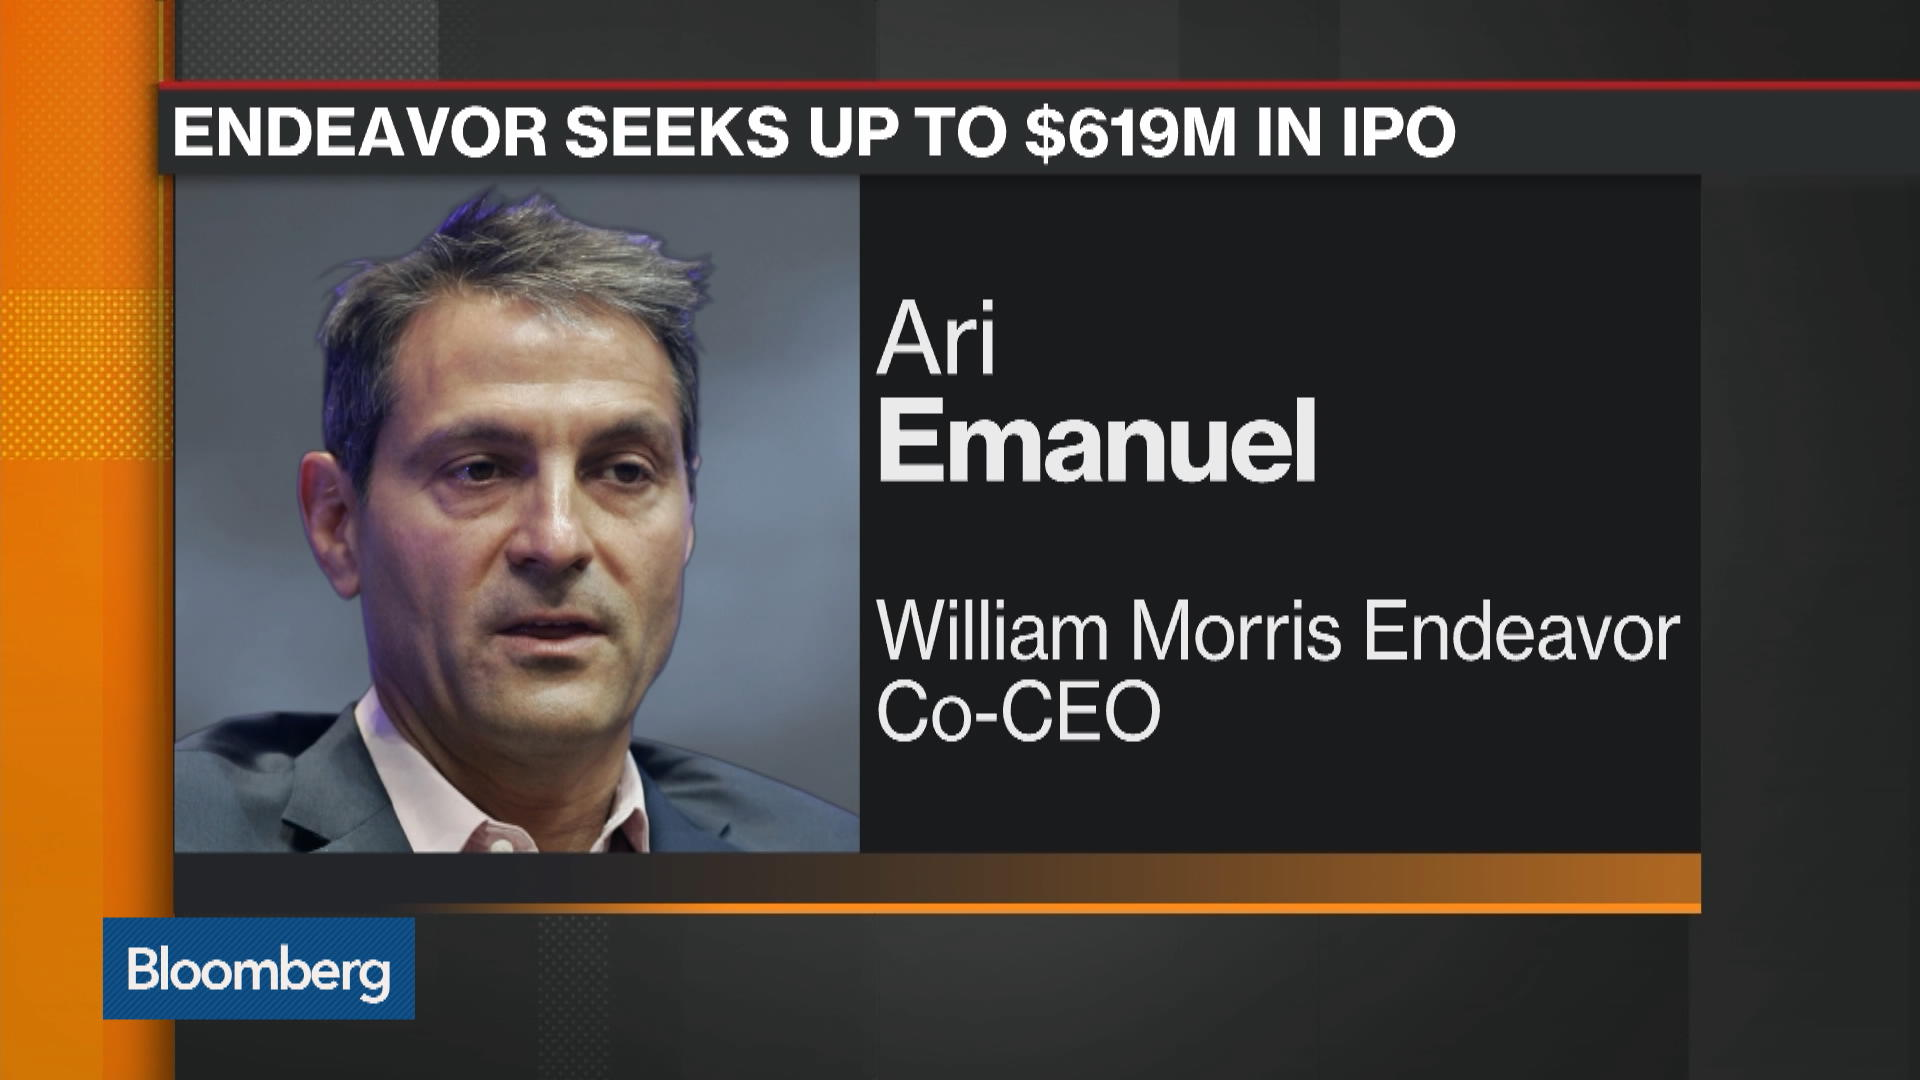 Hollywood Powerhouse Endeavor Seeks $619 Million in IPO